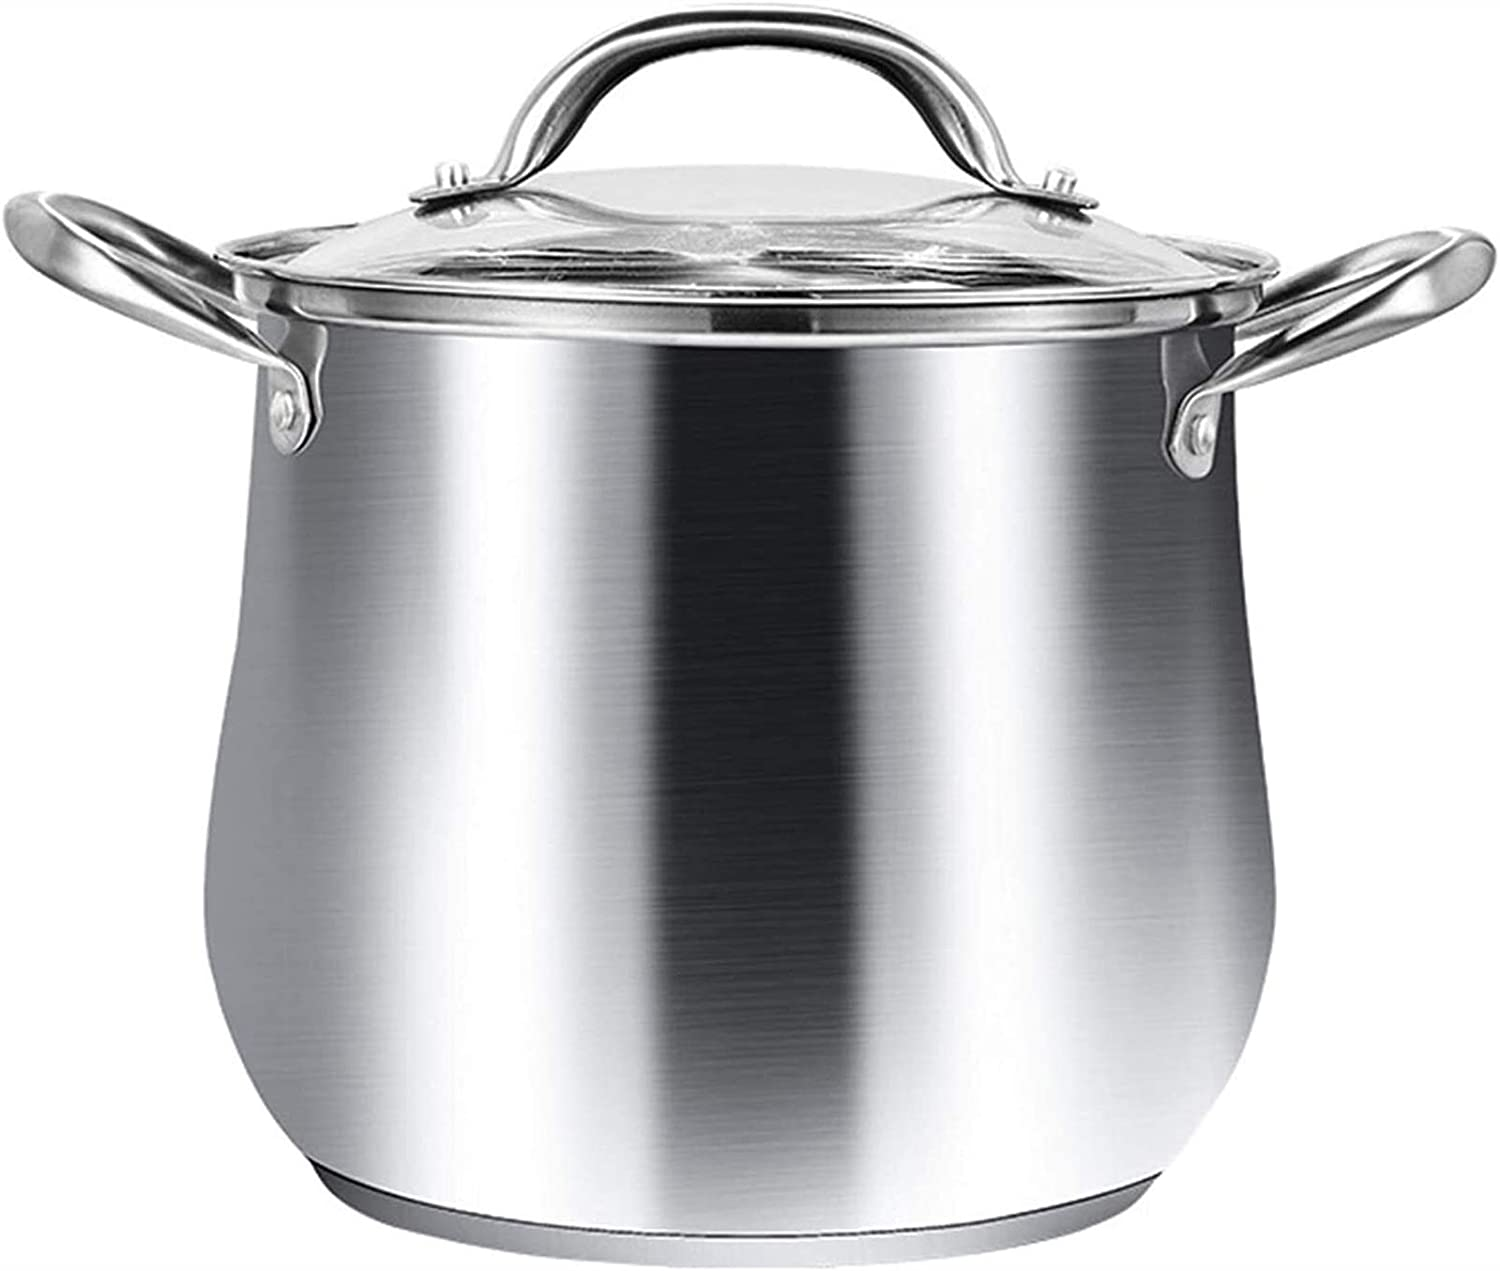 Steamer Pot Stainless Steel Food Soup Cooking Directly managed store Co Pan supreme